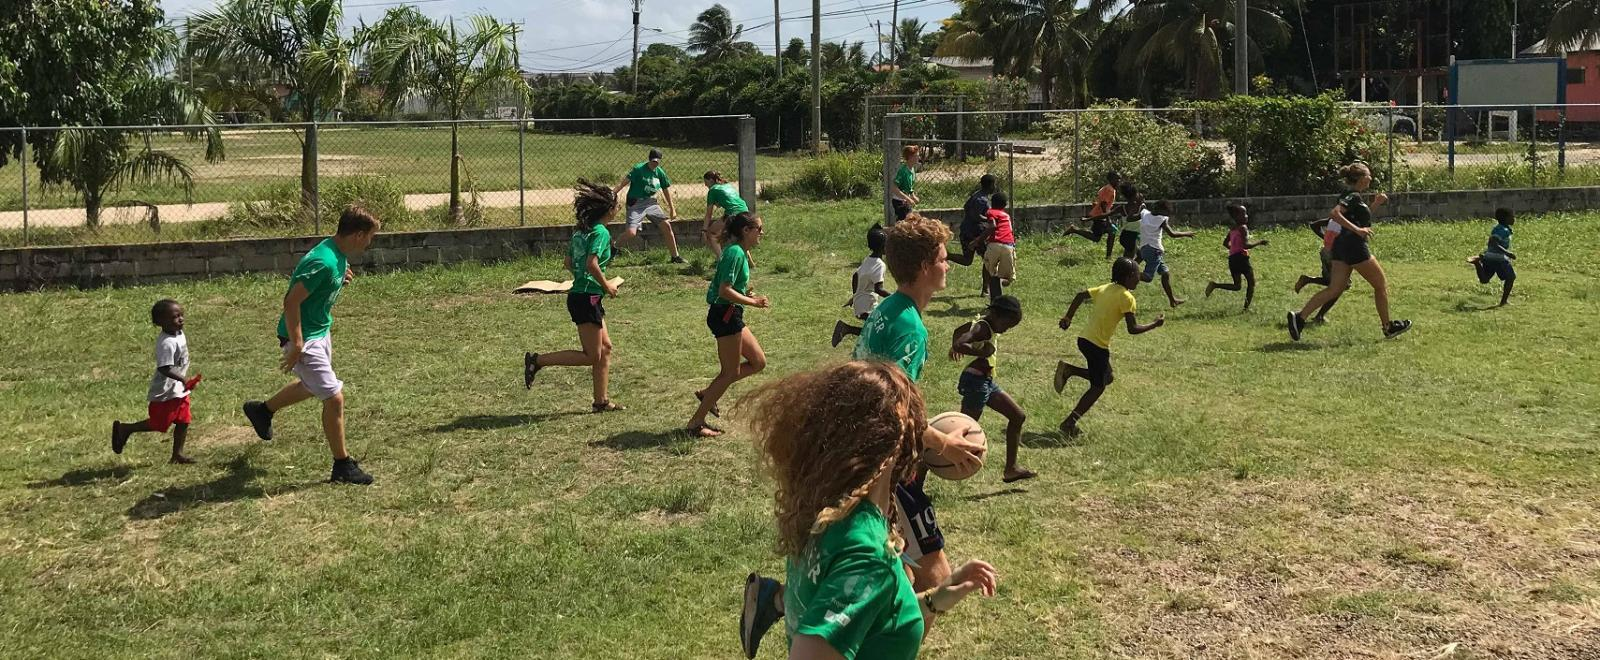 Projects Abroad Sports Coaching volunteers play games with schoolchildren in Belize